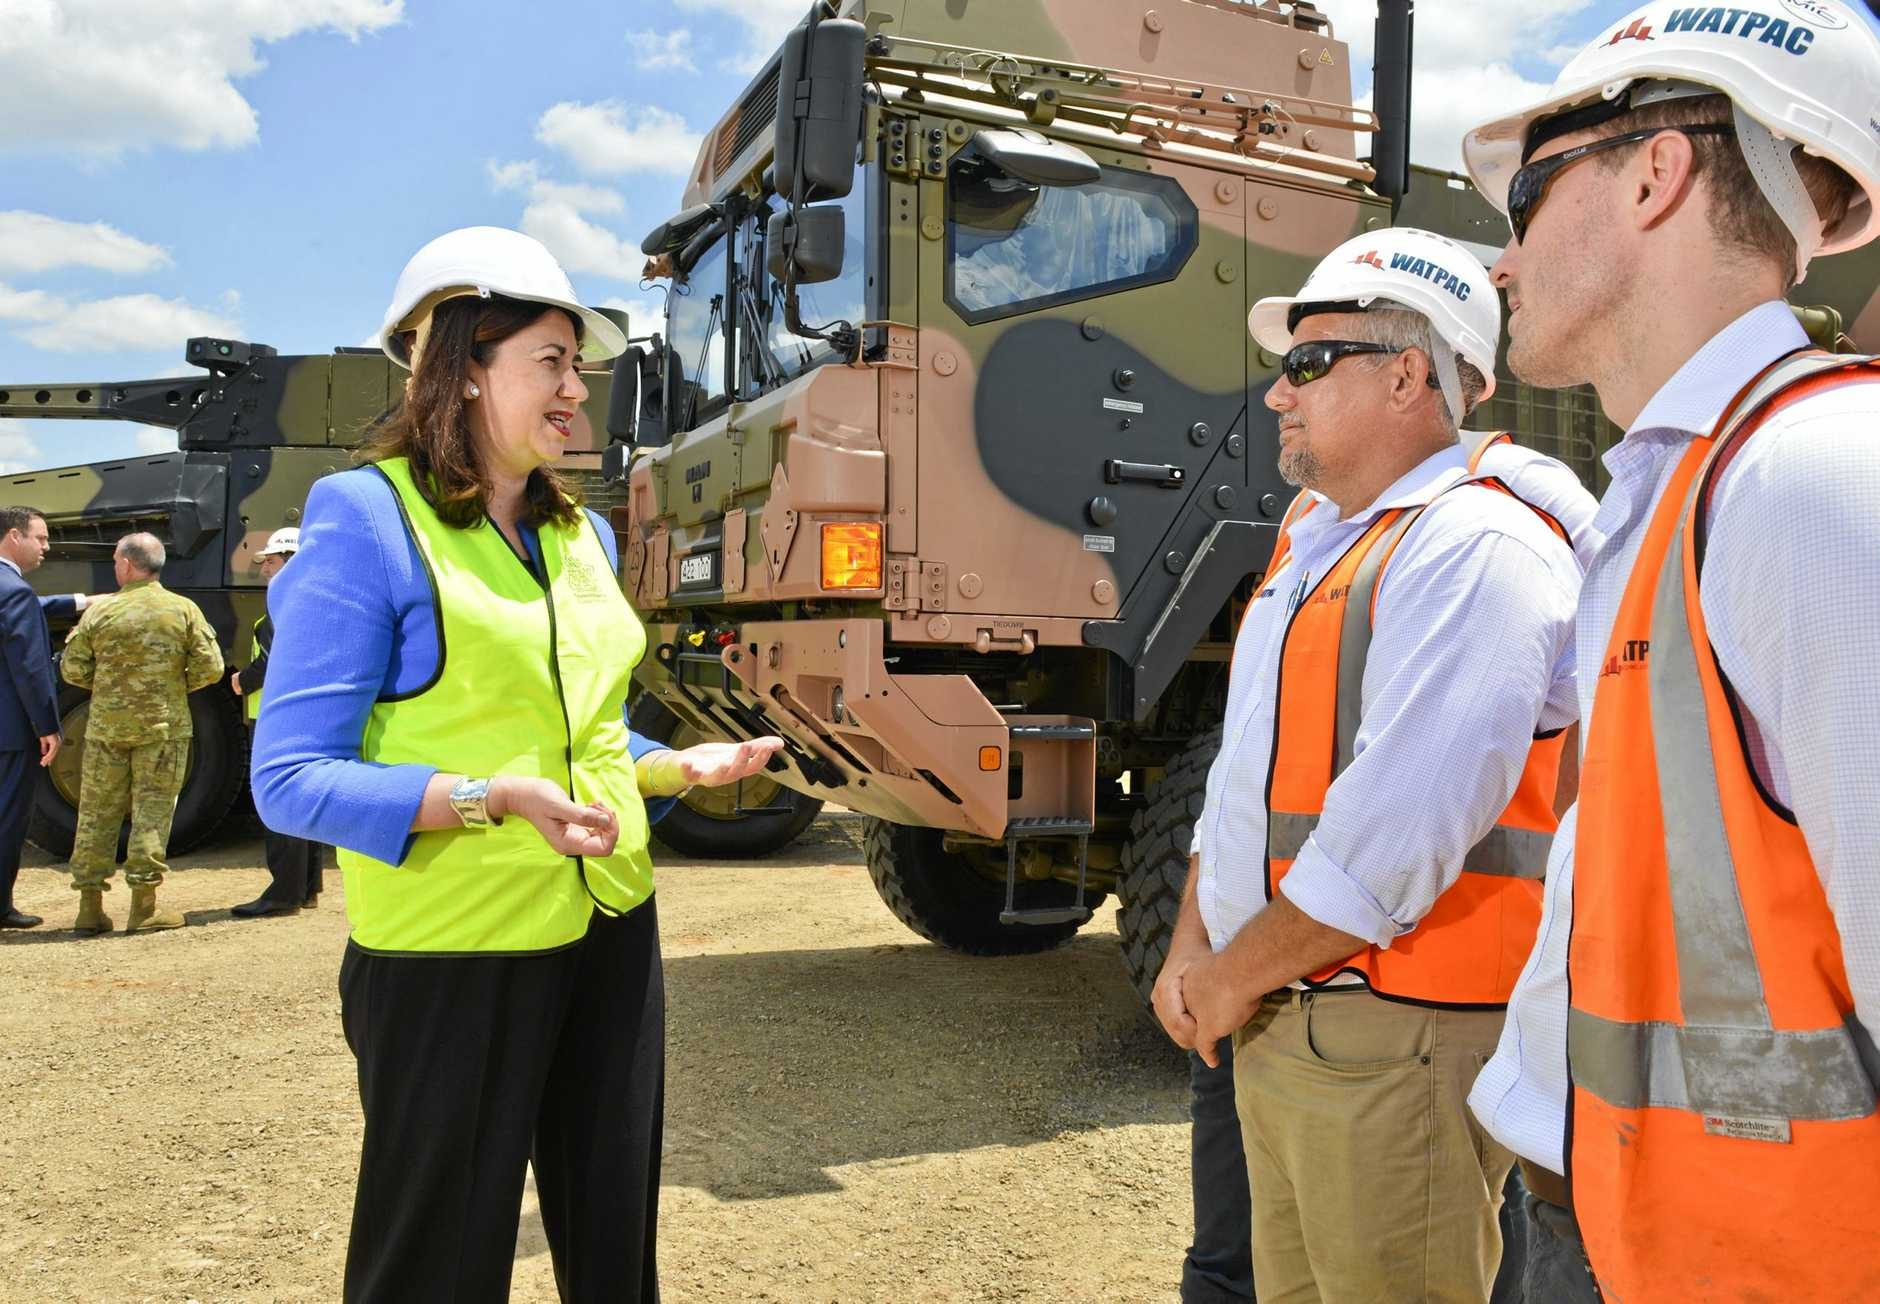 JOBS: Queensland Premier Annastacia Palaszczuk speaks with workers at the launch of the $170 million Rheinmetall Military Vehicle Centre at Redbank.